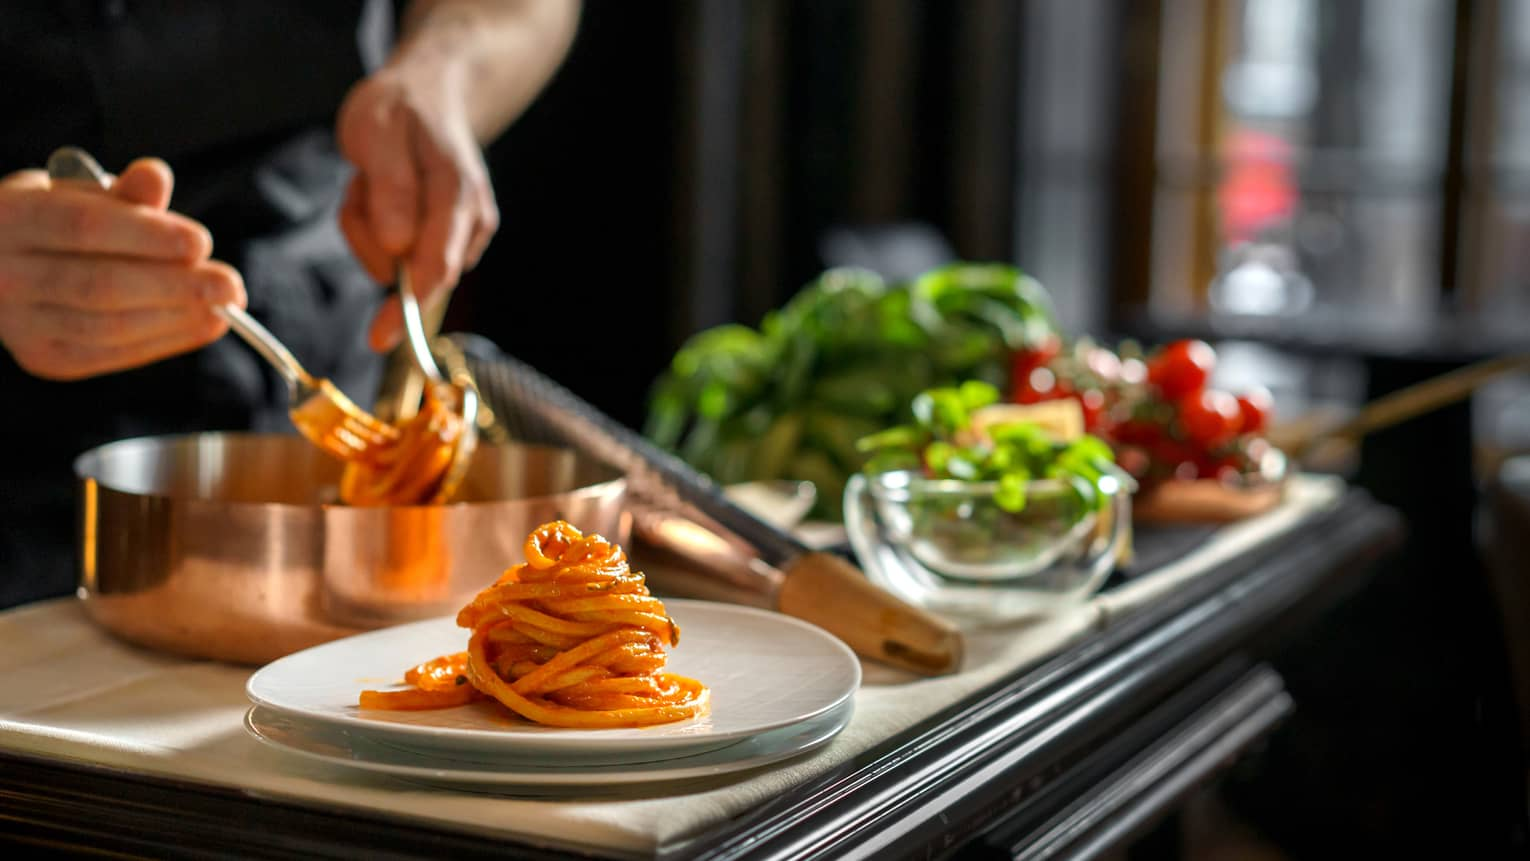 Chef dishes out spaghetti noodles piled on plate next to fresh vegetables